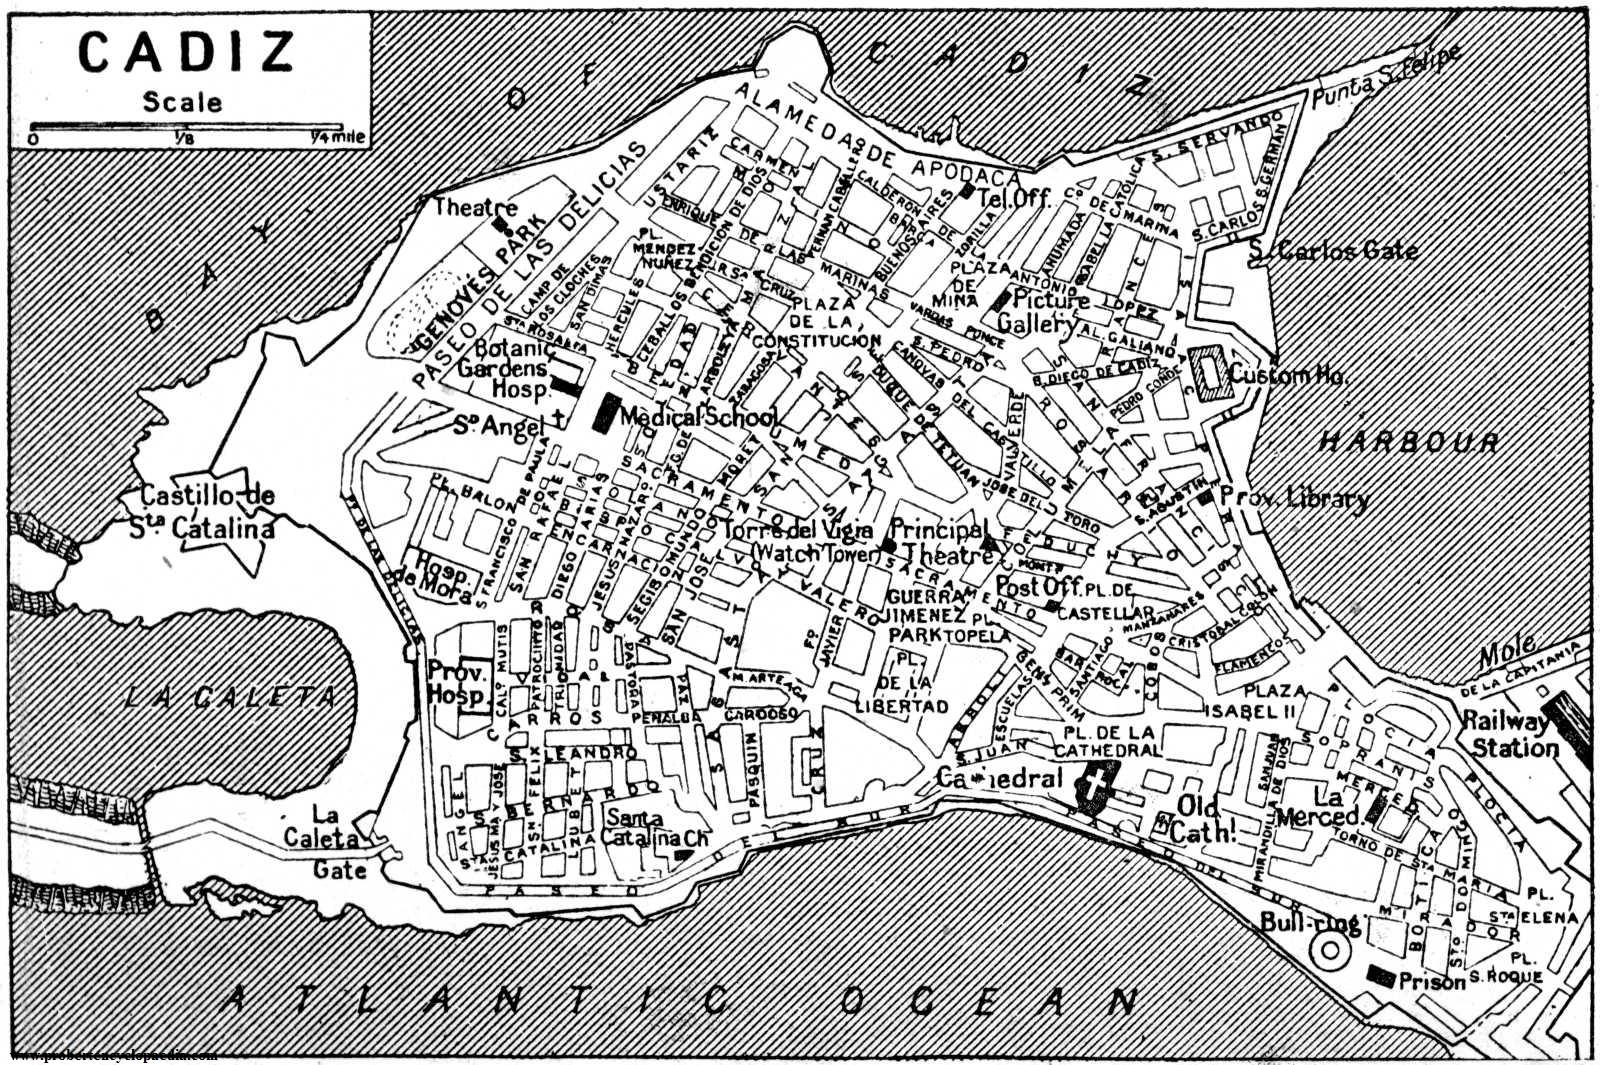 Map of Cádiz 1922